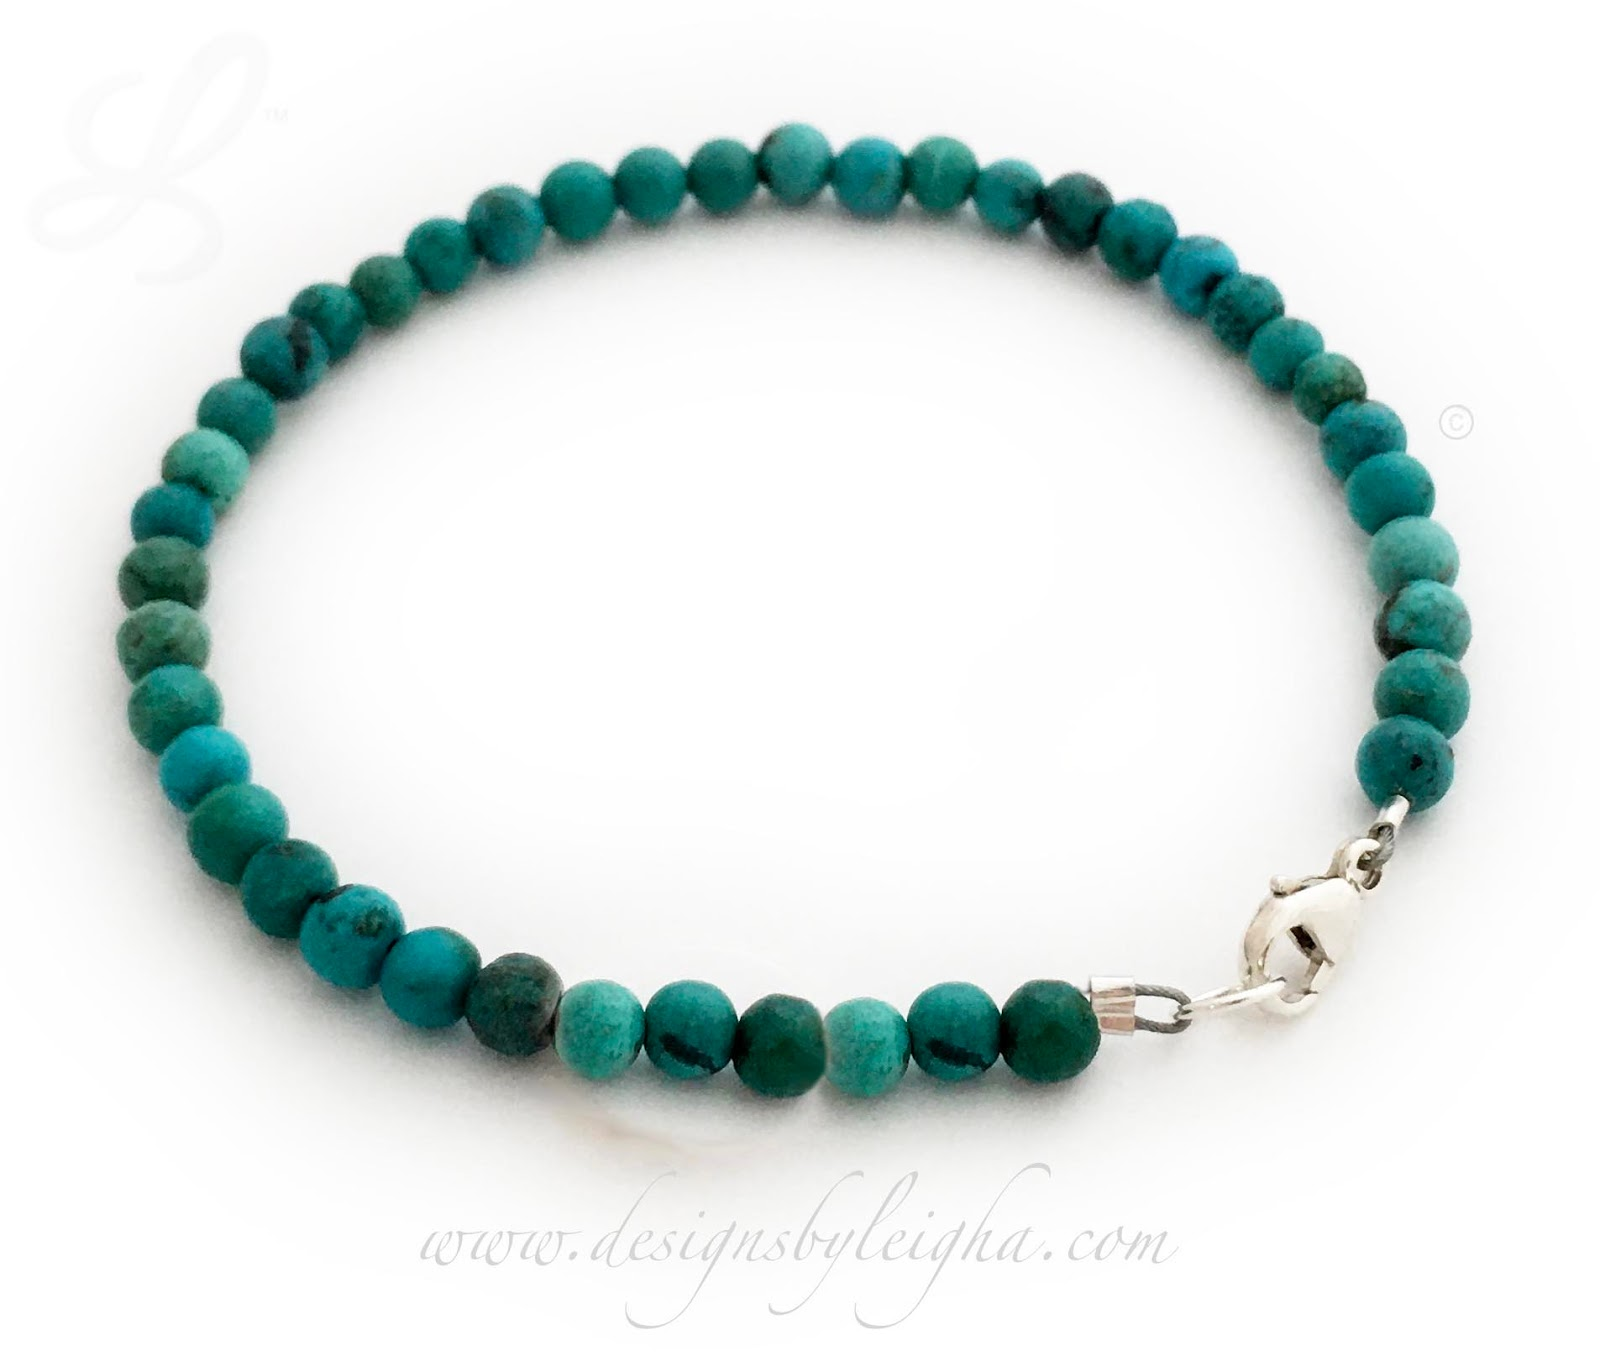 LLL-B-Vib-Turquoise-4mm 4mm Turquoise Bracelet Healing - Protective - Spiritual - Communication - Intuition